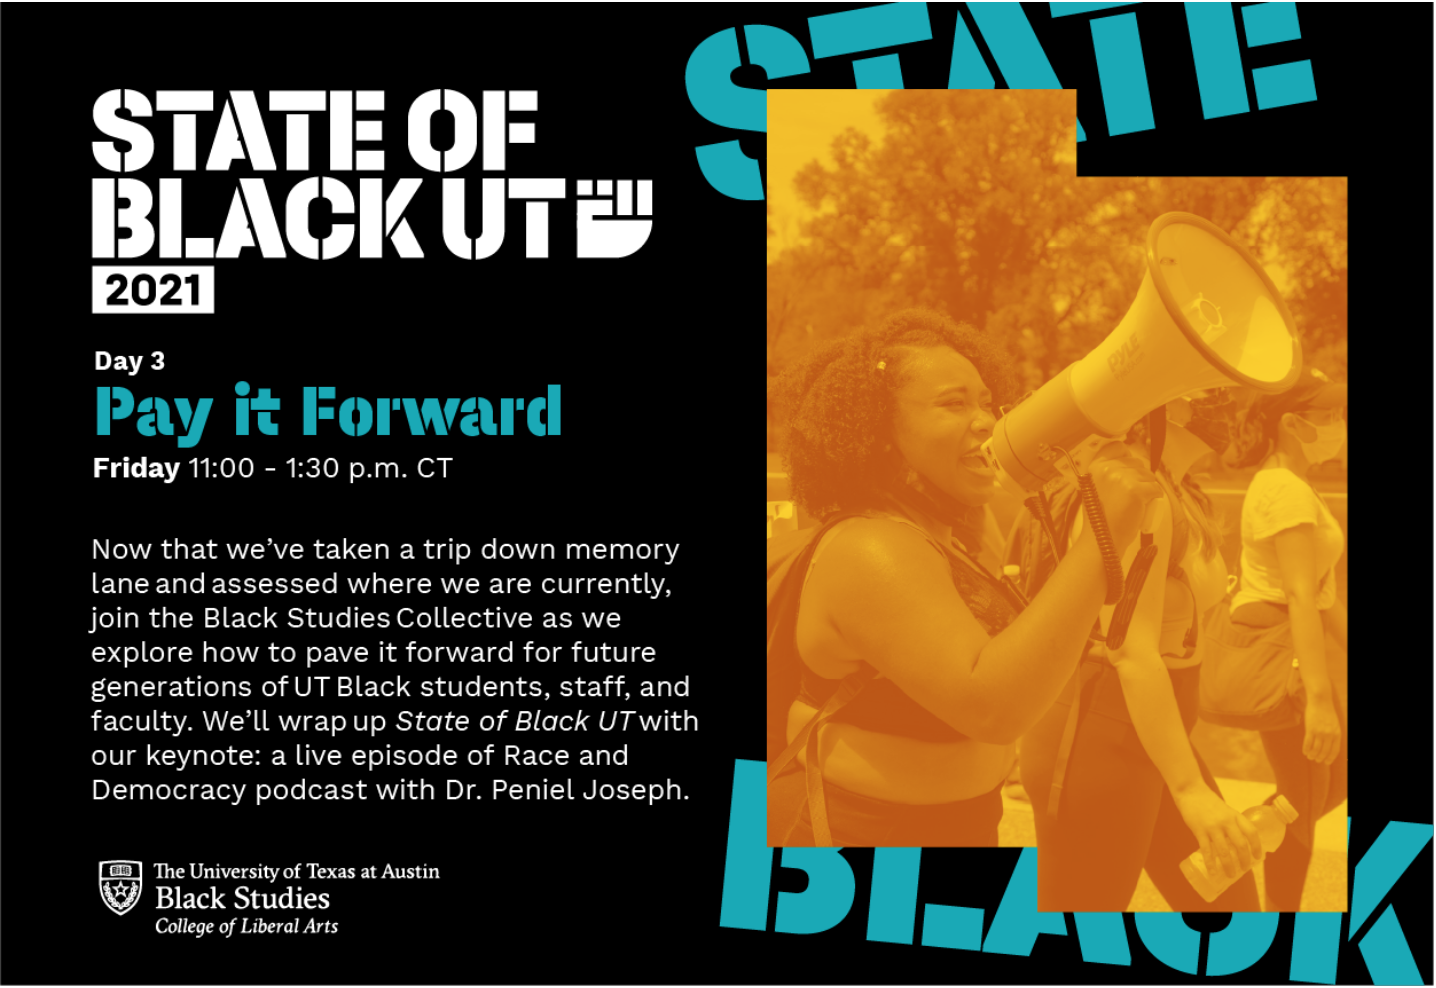 The State of Black UT: Pay it Forward